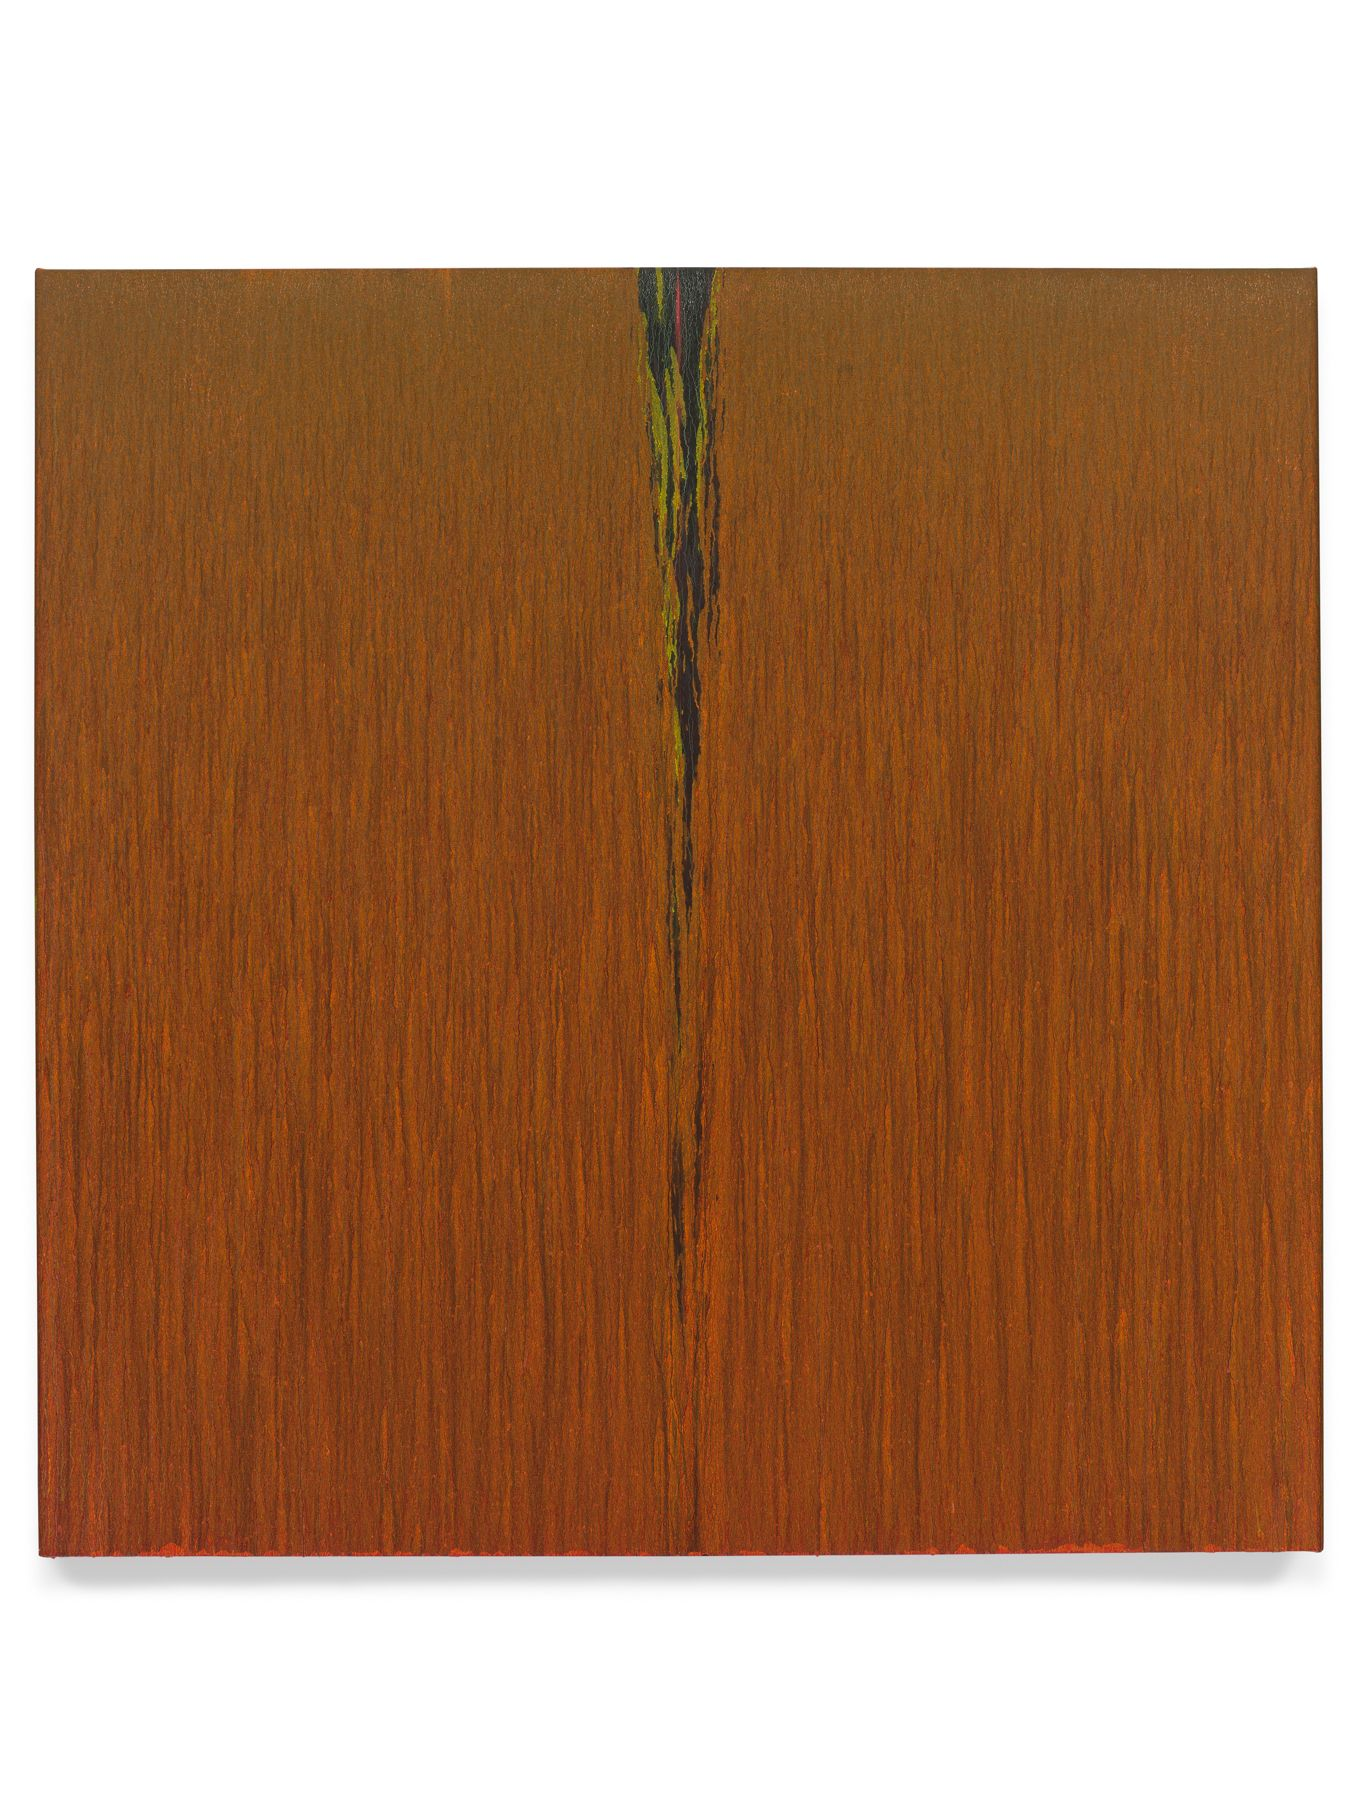 Pat Steir, Orange, 2018, Oil on canvas